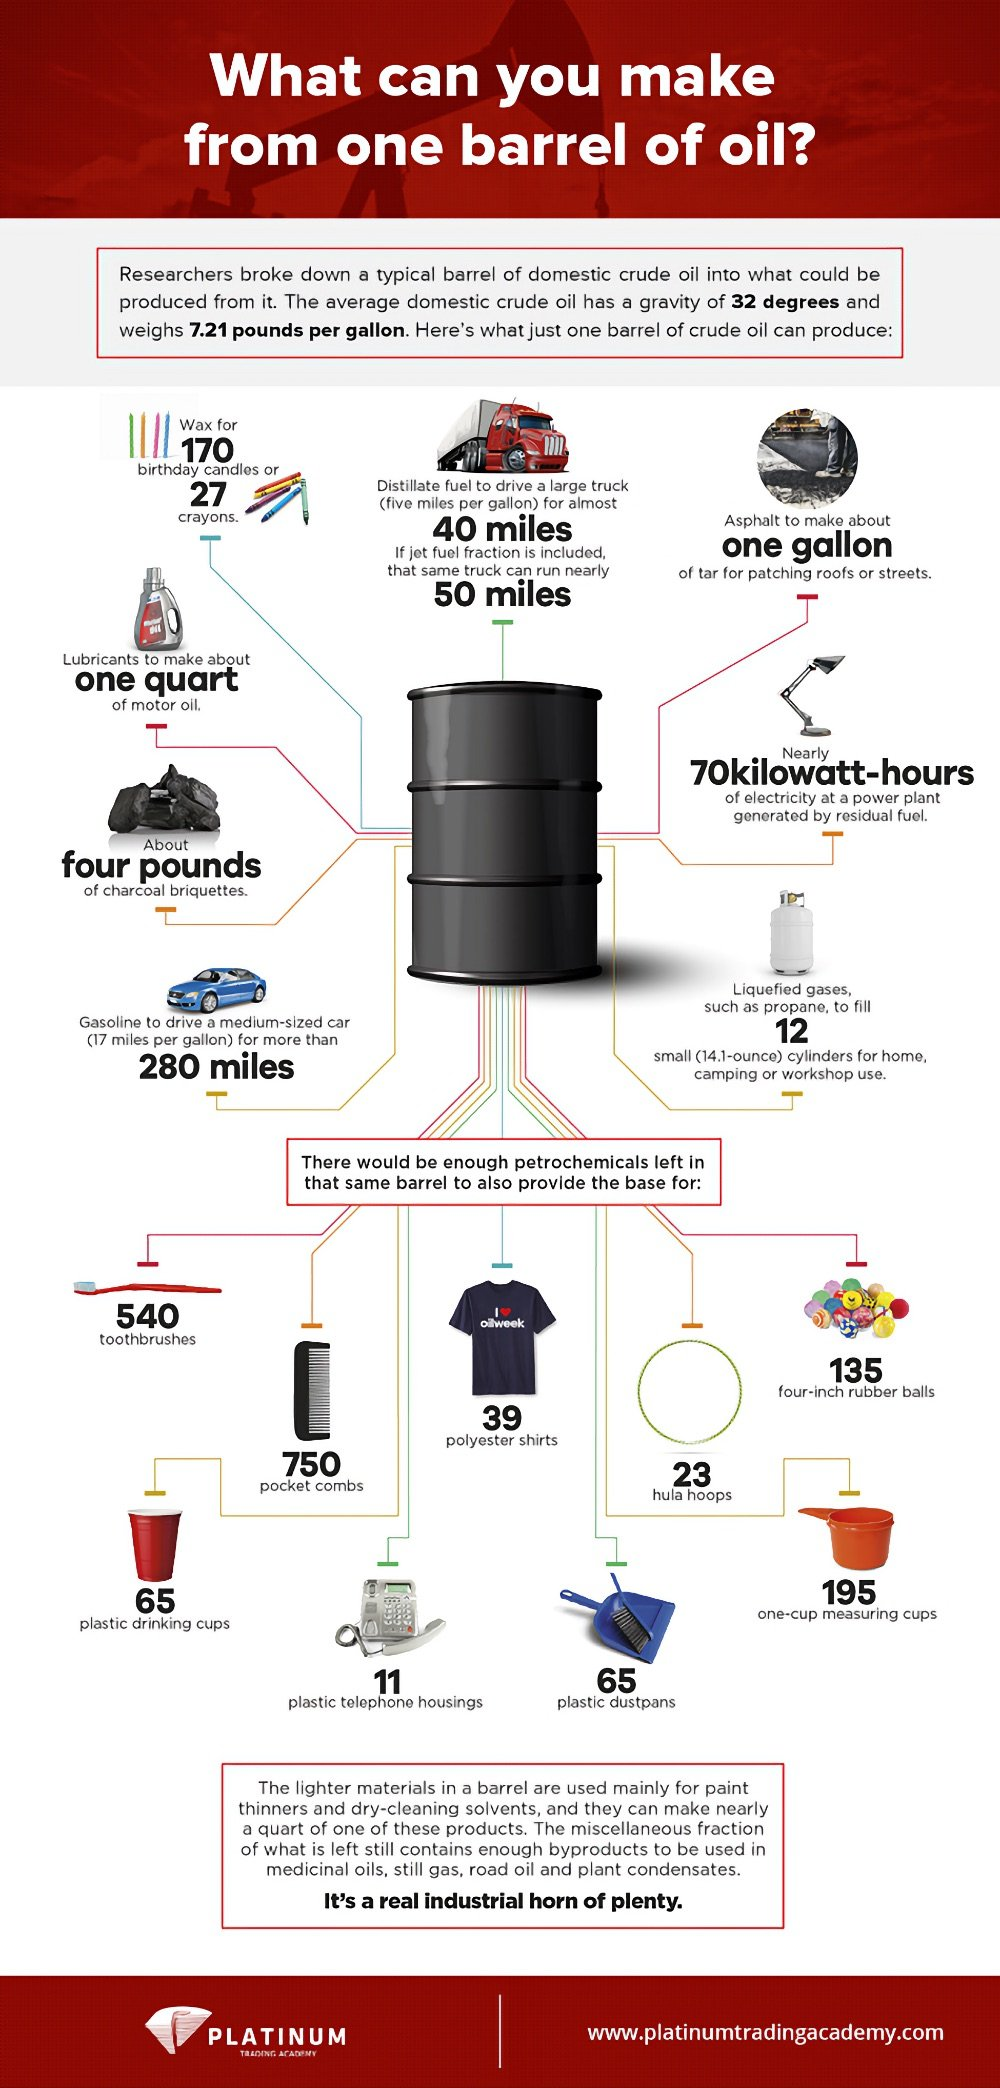 What Can You Make from One Barrel of Oil?